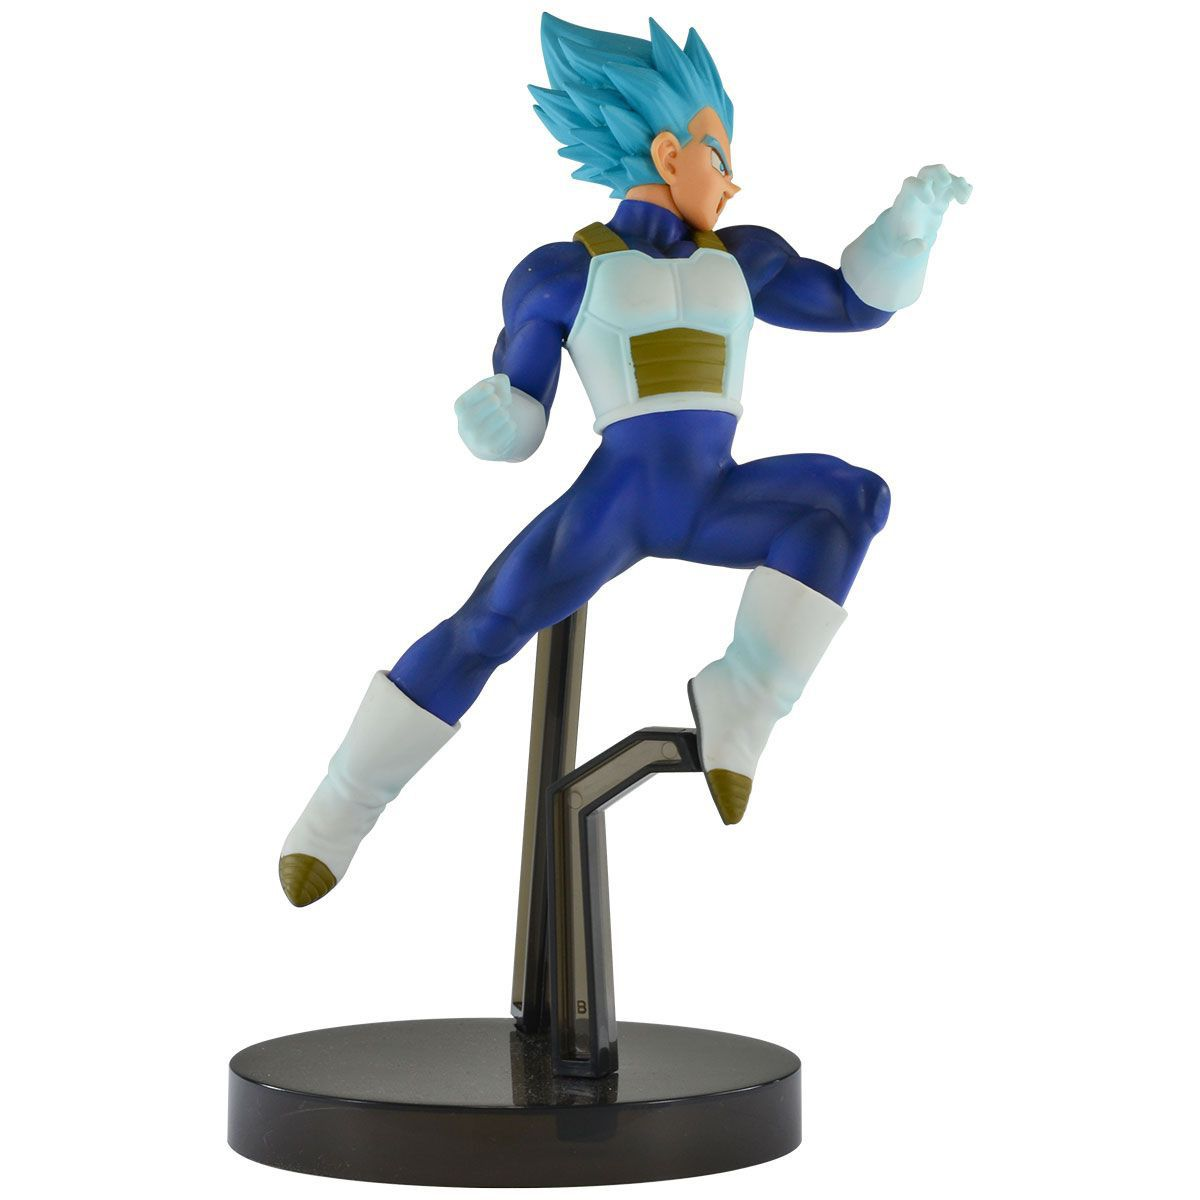 Super Saiyan Vegeta Blue - Dragon Ball Super - Bandai Banpresto